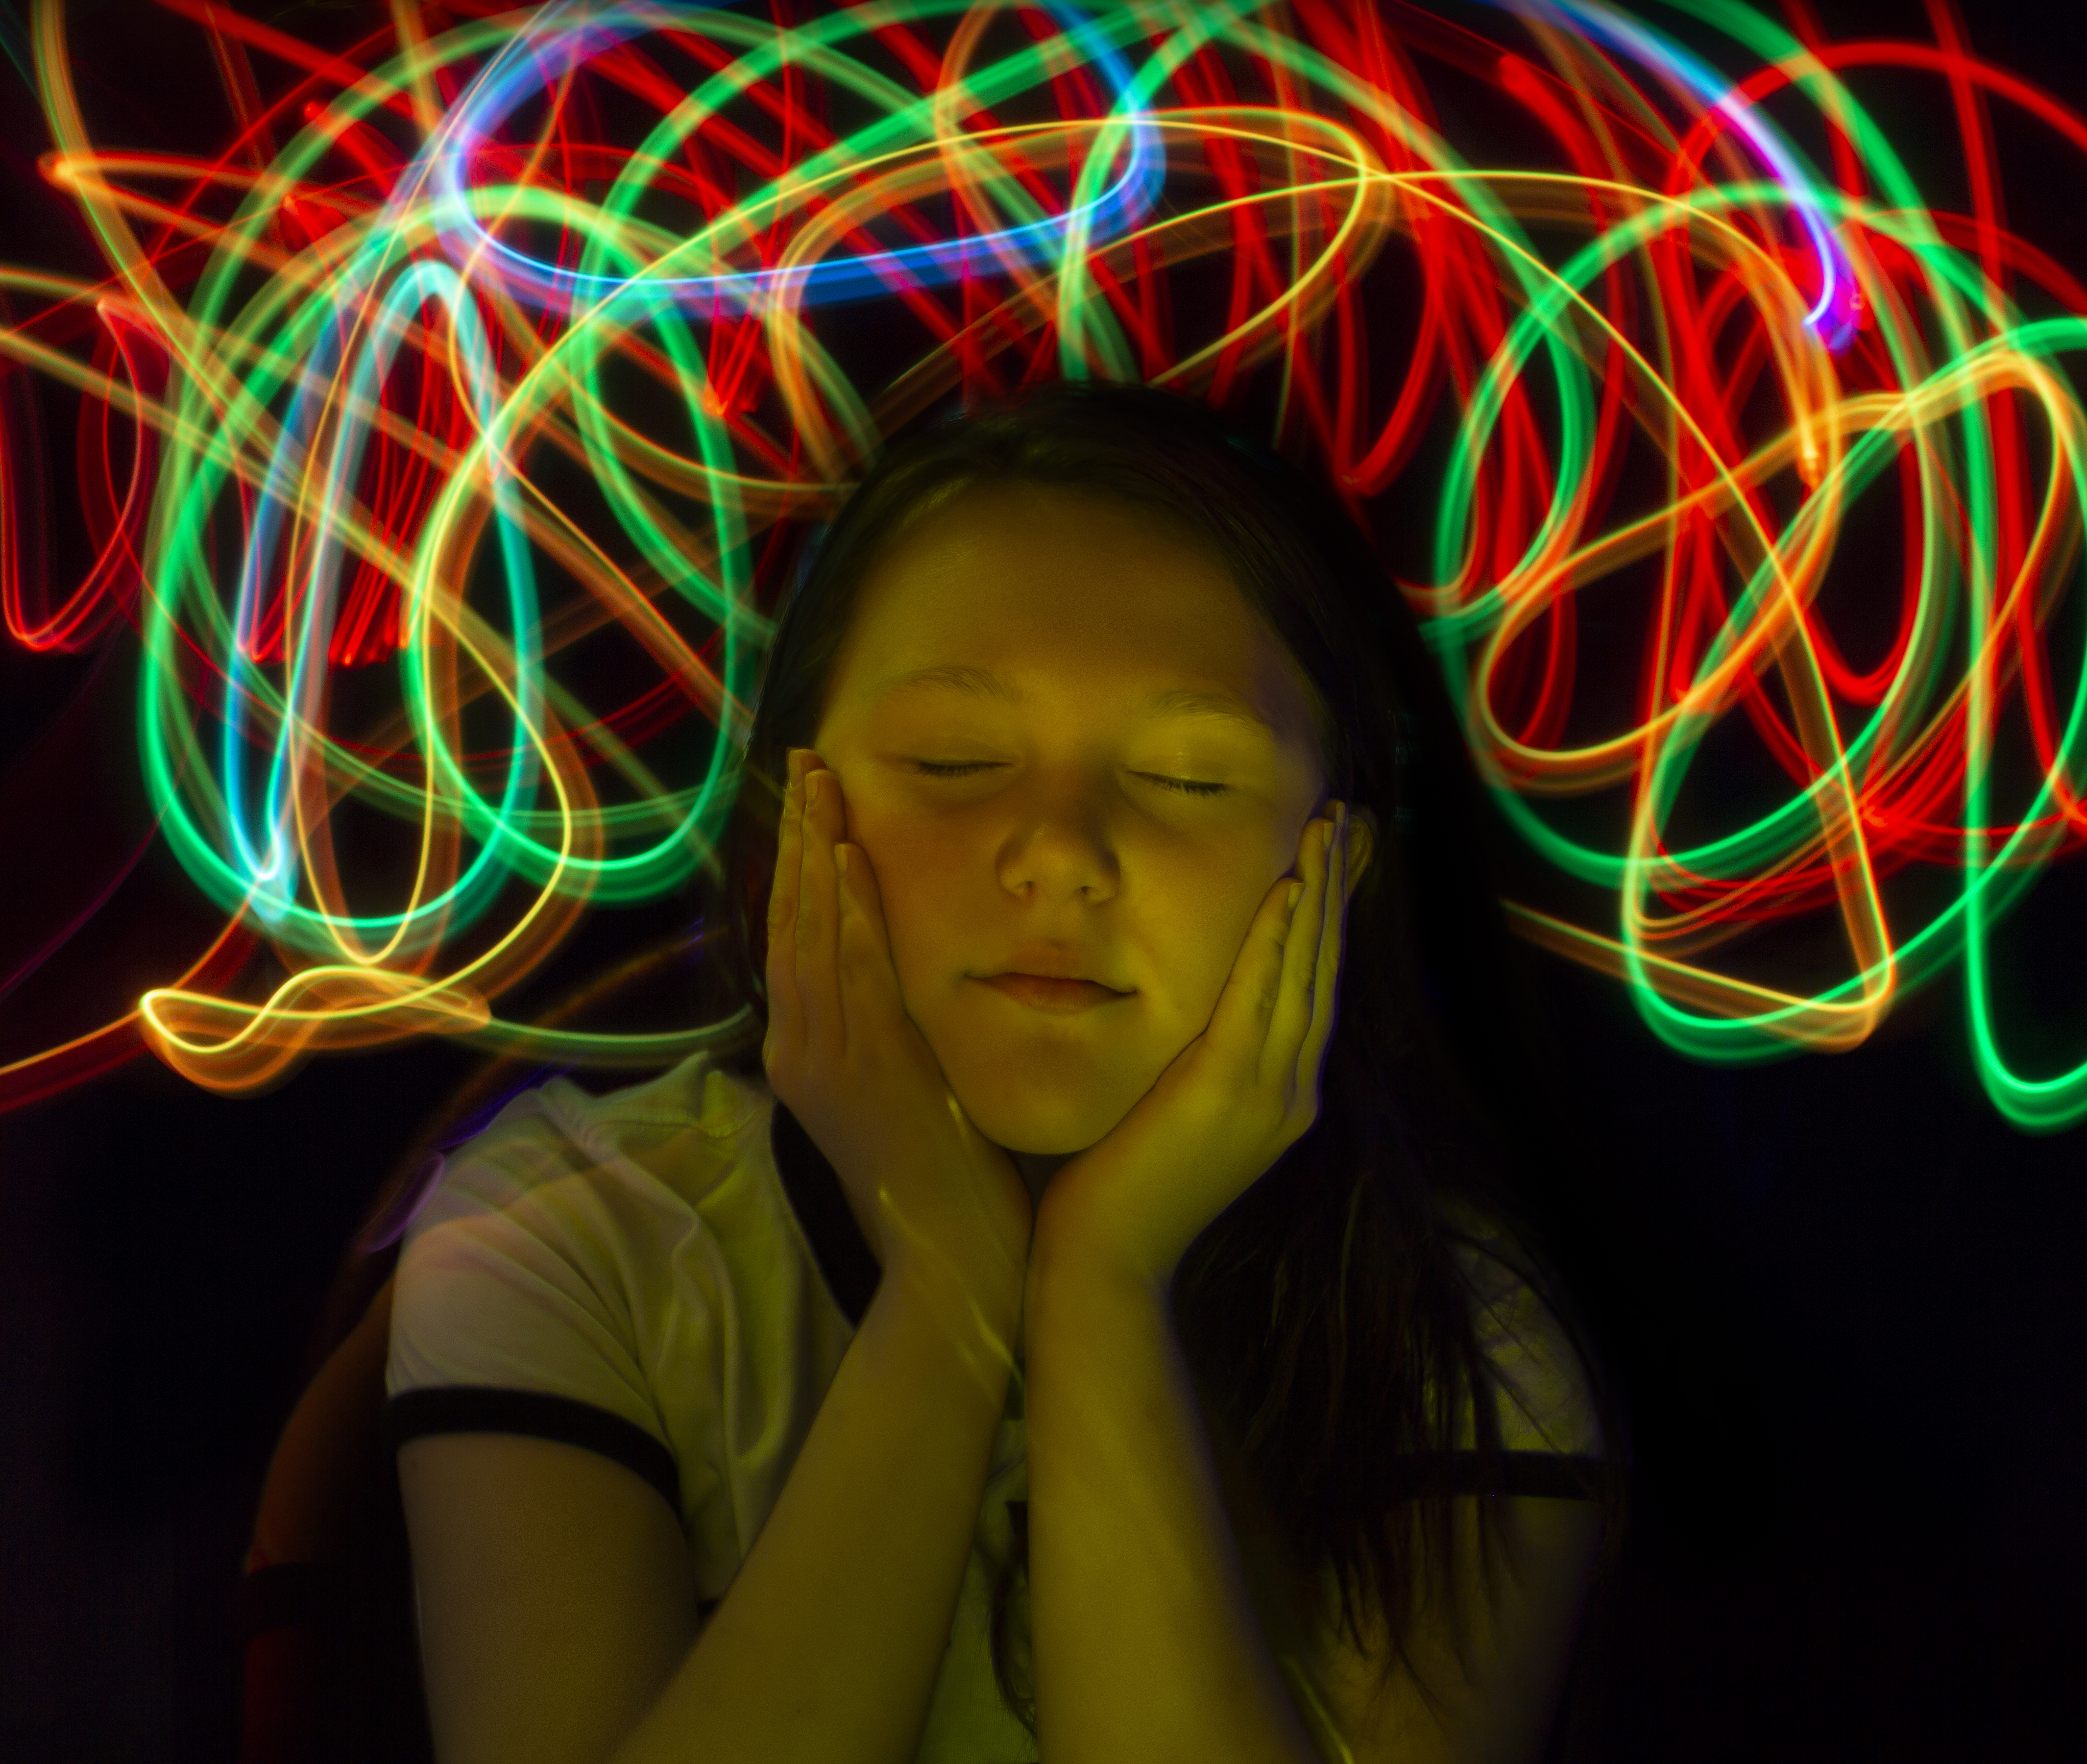 A girl with her eyes closed cups her cheeks with her hands in the dark under neon swirls.